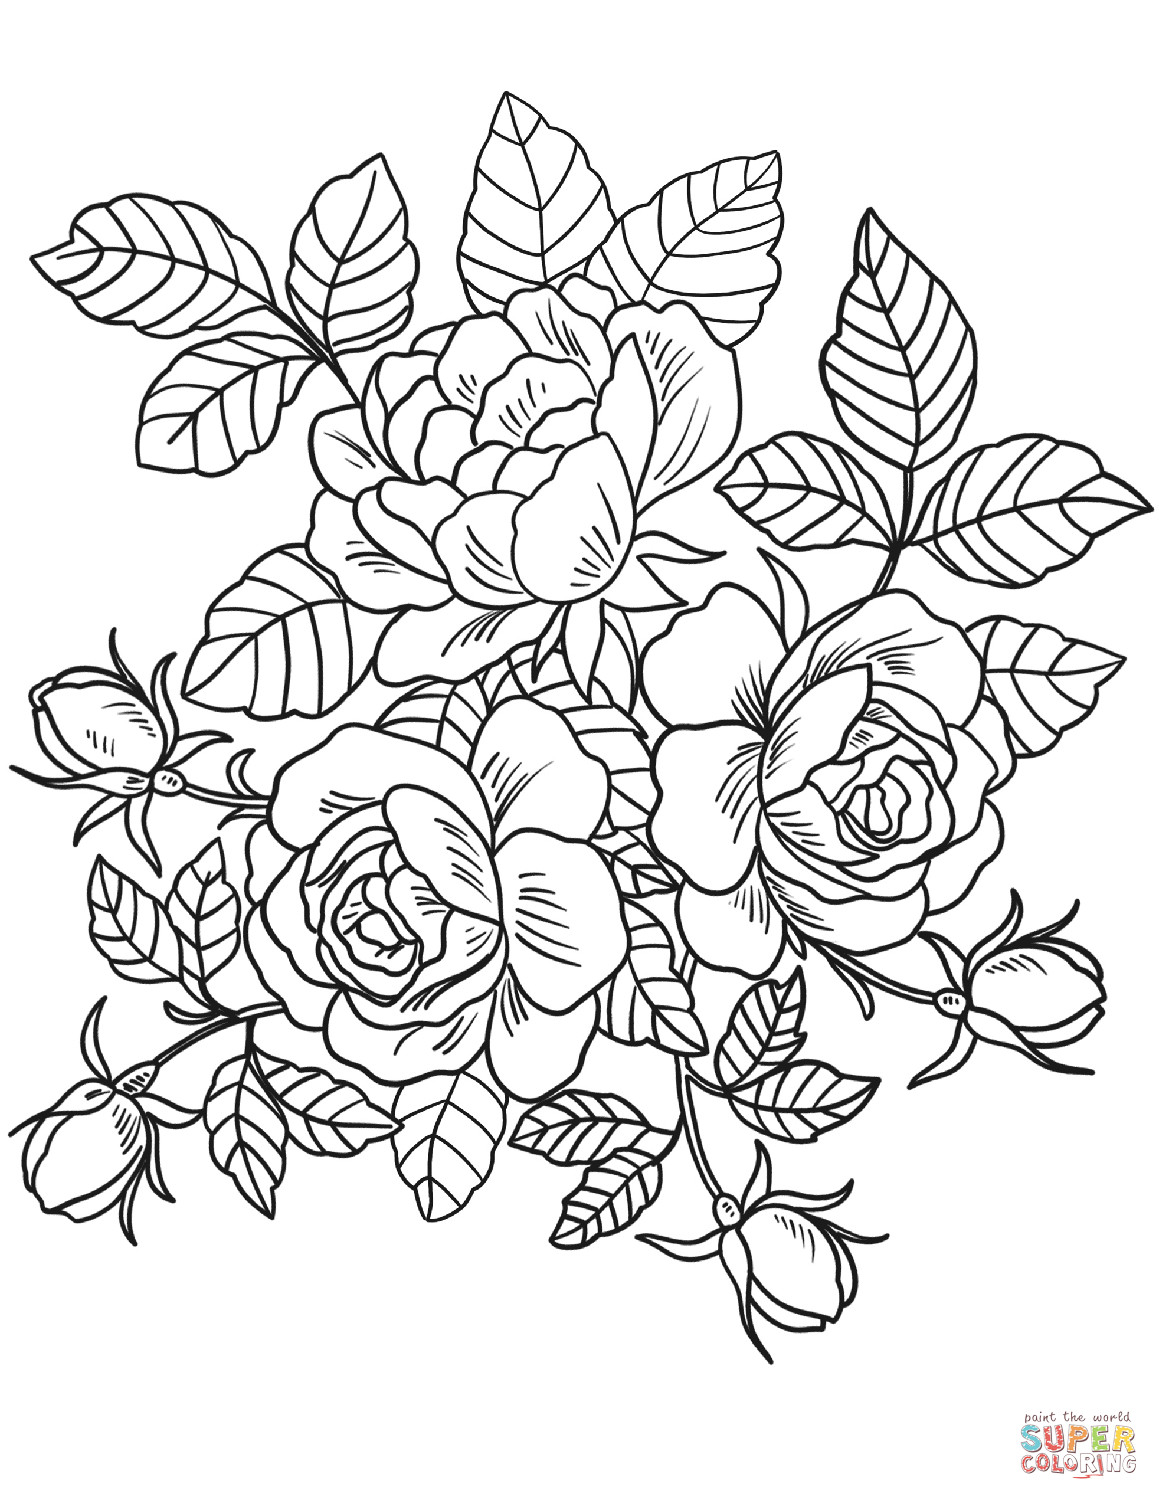 Best ideas about Printable Coloring Pages Flowers . Save or Pin Roses Flowers coloring page Now.